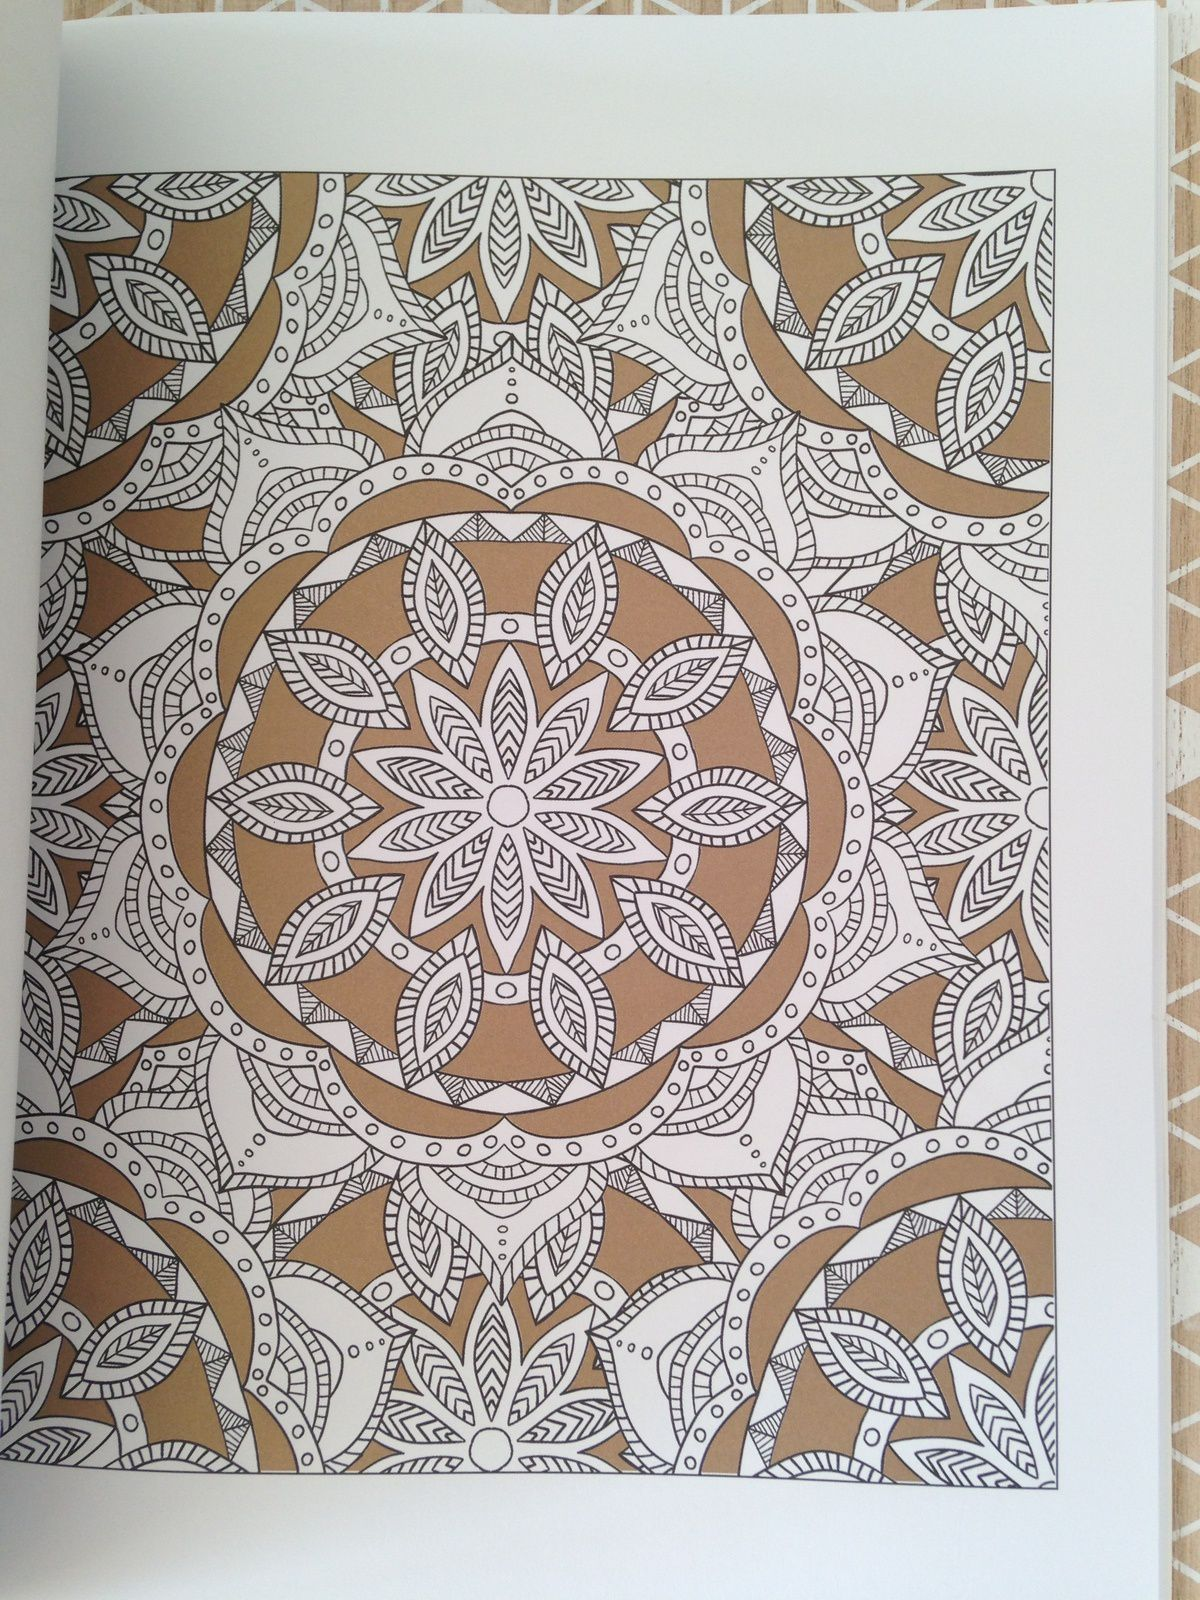 #coloriage #or #mandalas #haul #noz #charlotteblabla blog